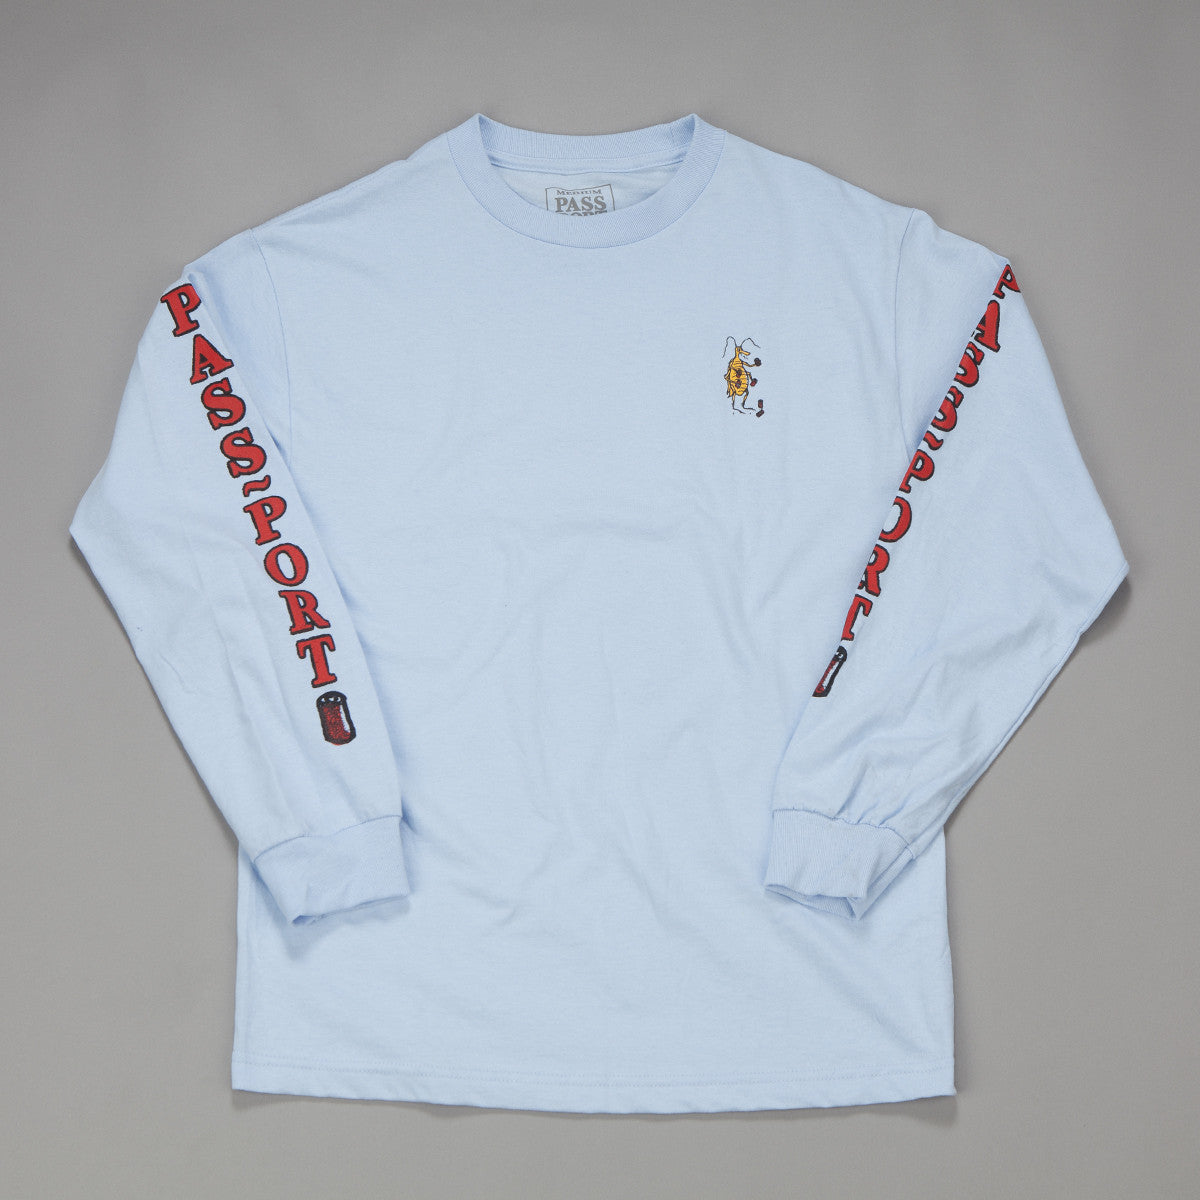 Pass Port Roach Cans Long Sleeve T-Shirt - Blue